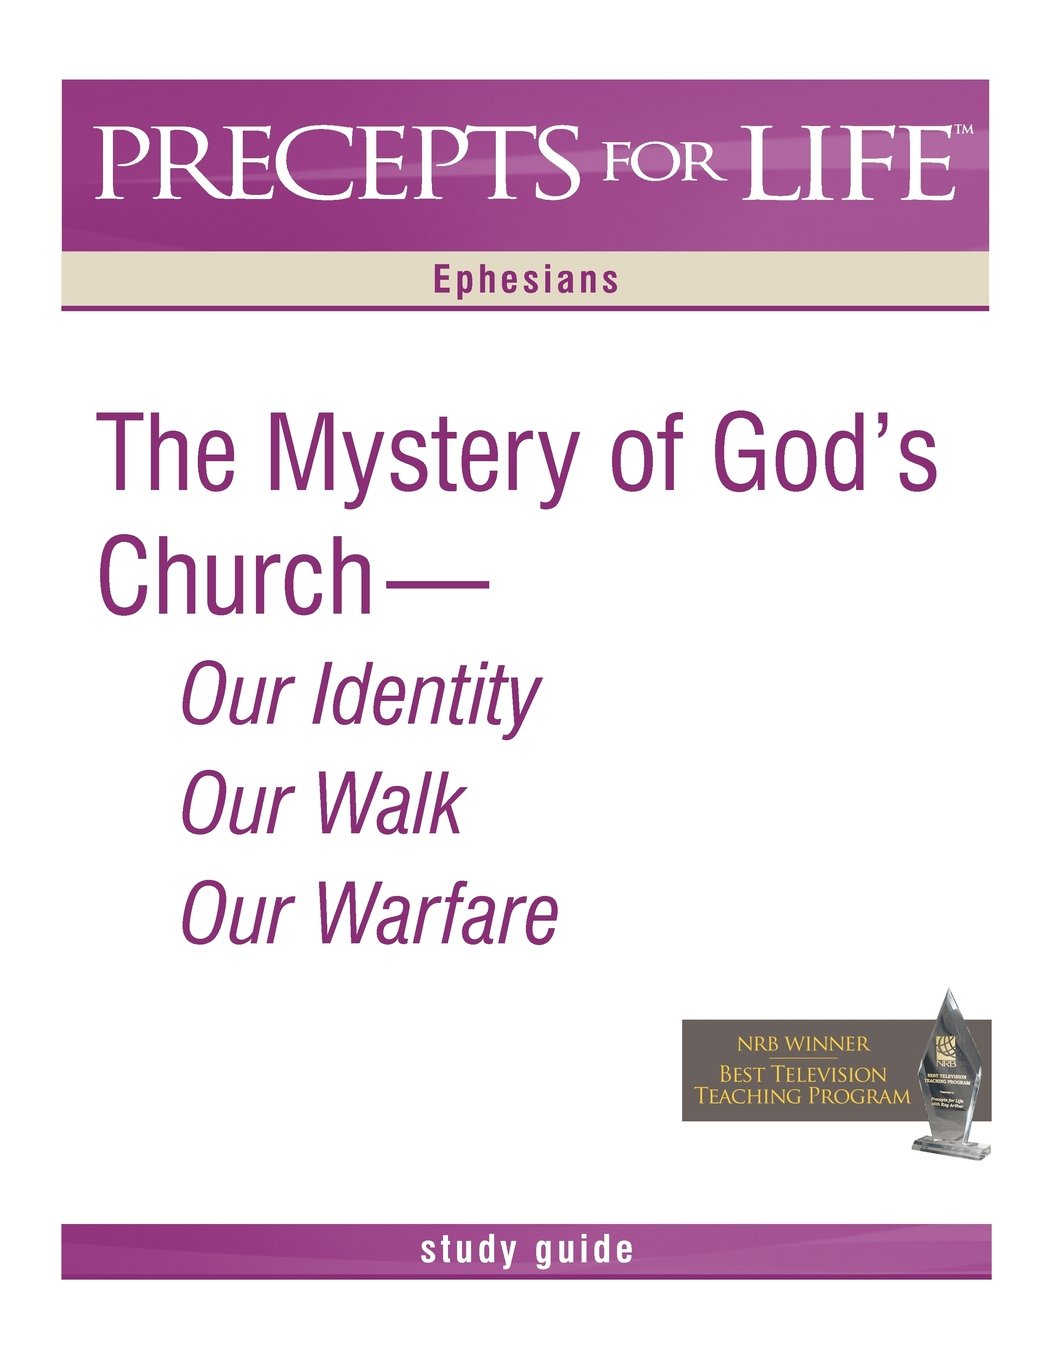 Download Precepts for Life Study Guide: The Mystery of God's Church -- Our Identity, Our Walk, Our Warfare (Ephesians) pdf epub